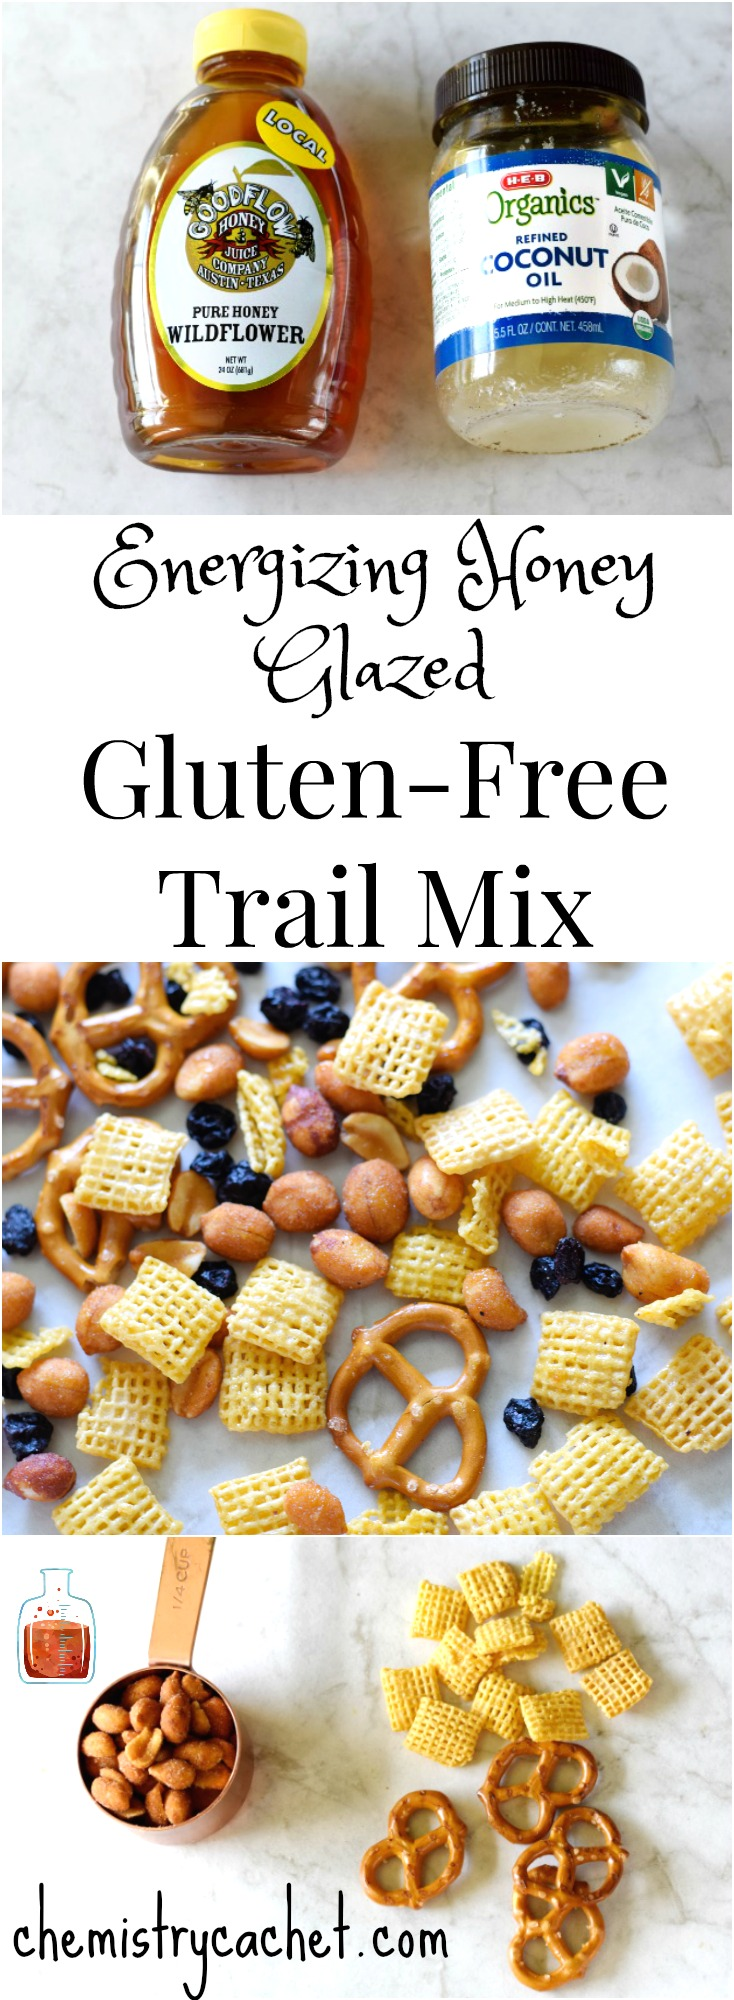 The Best Energizing Honey Glazed Gluten-Free Trail Mix. This gluten-free trail mix is so healthy and easy to make! on chemistrycachet.com